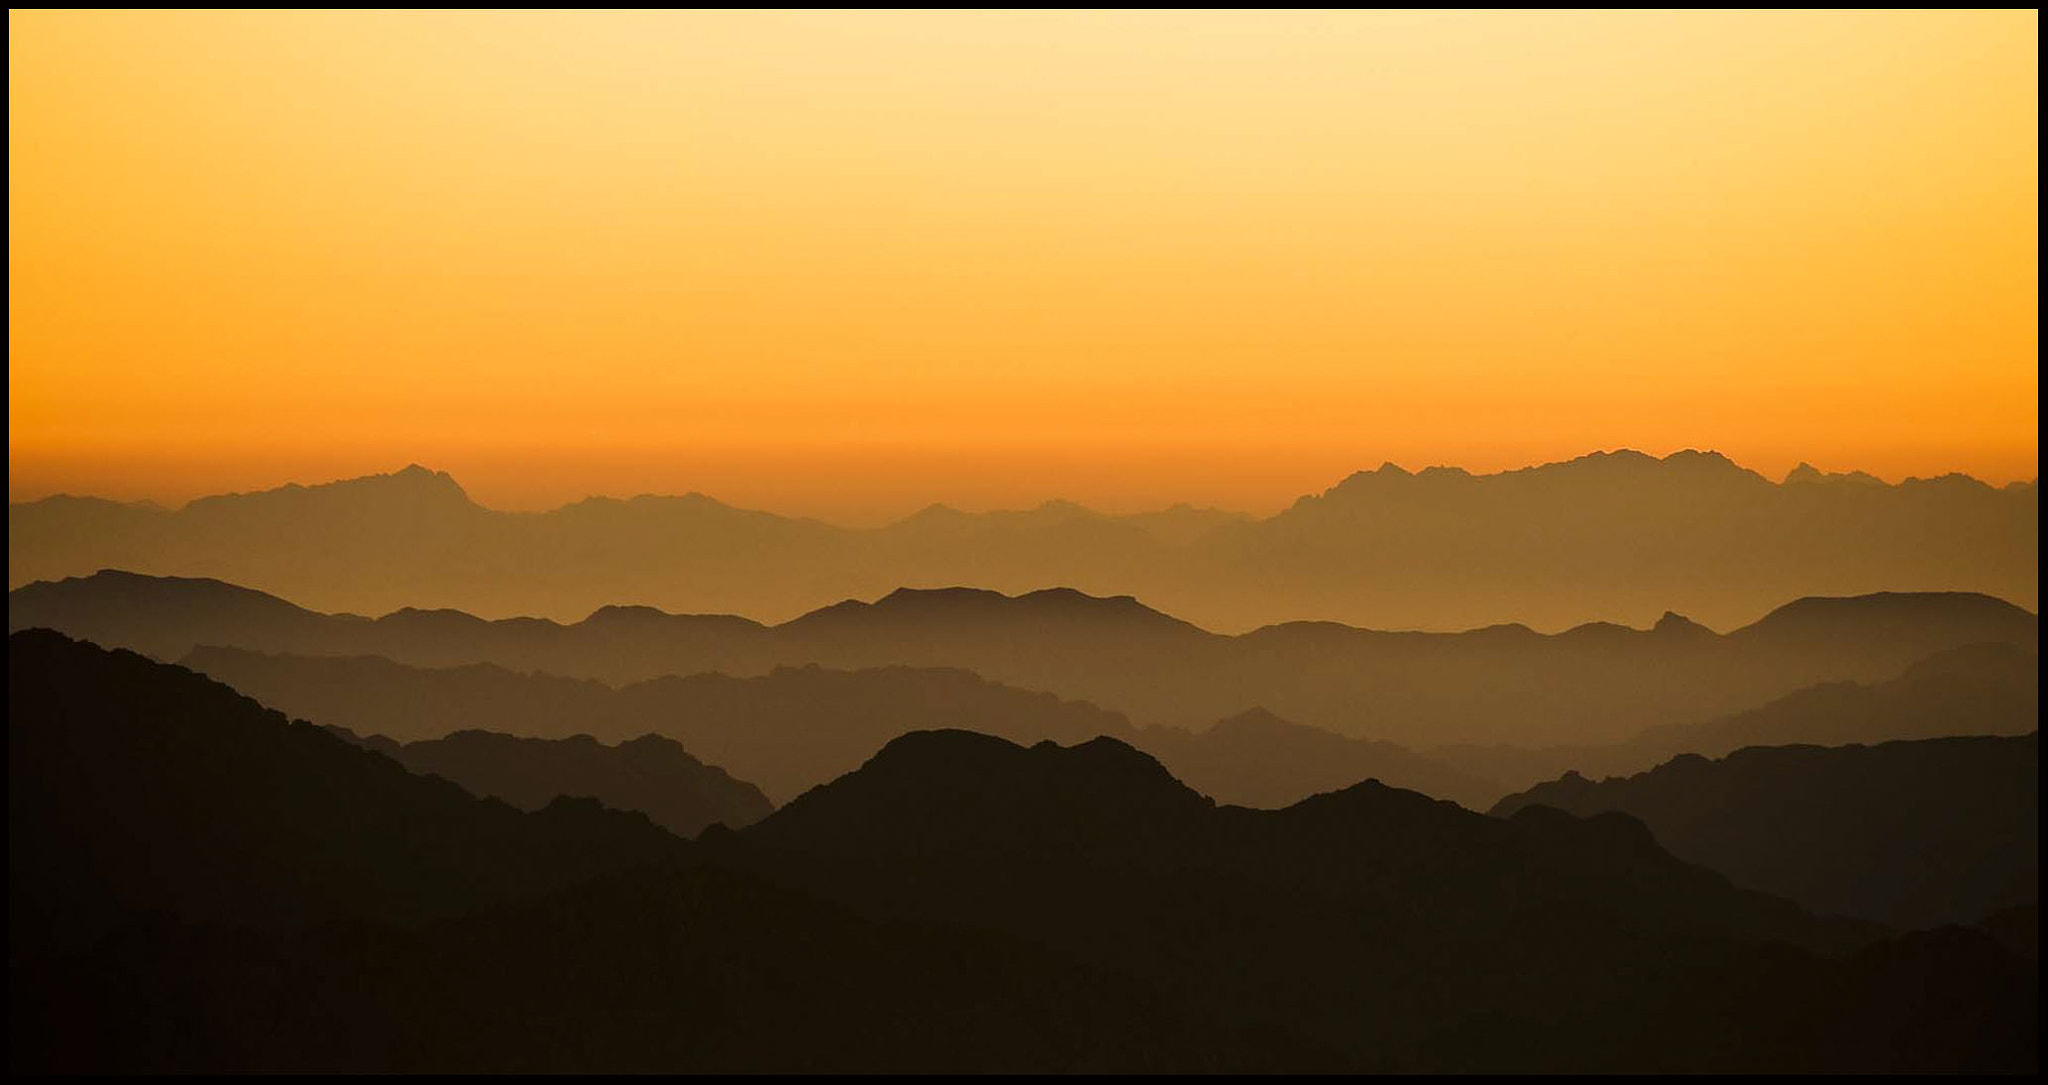 Photograph Sinai Sunrise by Anthony W. S. Soo on 500px